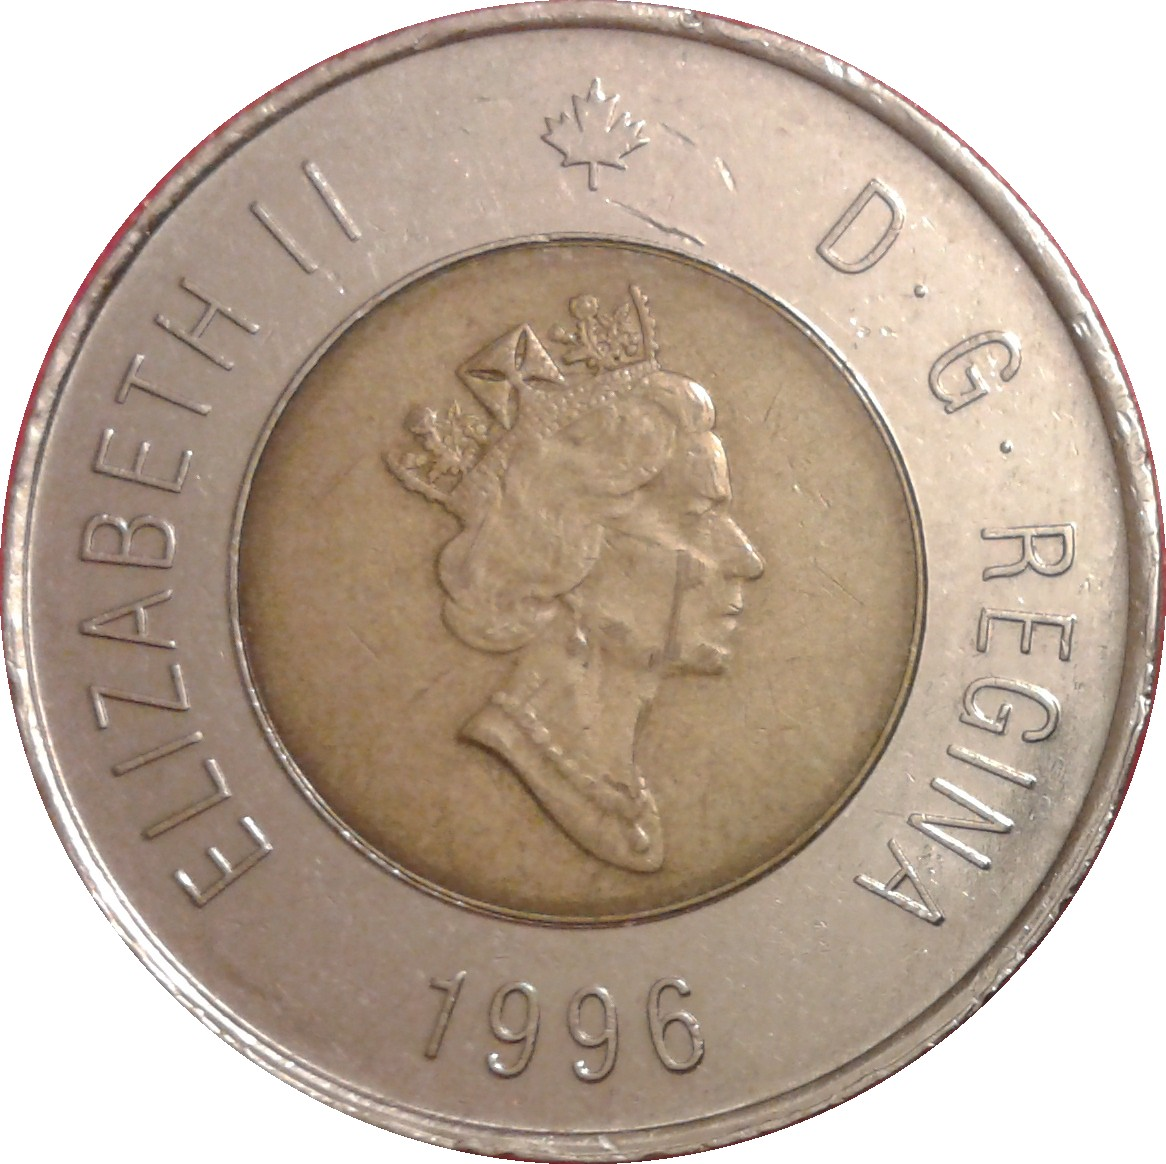 Circulated 2 Dollars -Knowledge- Canadian Coin 2000 Toonie Canada